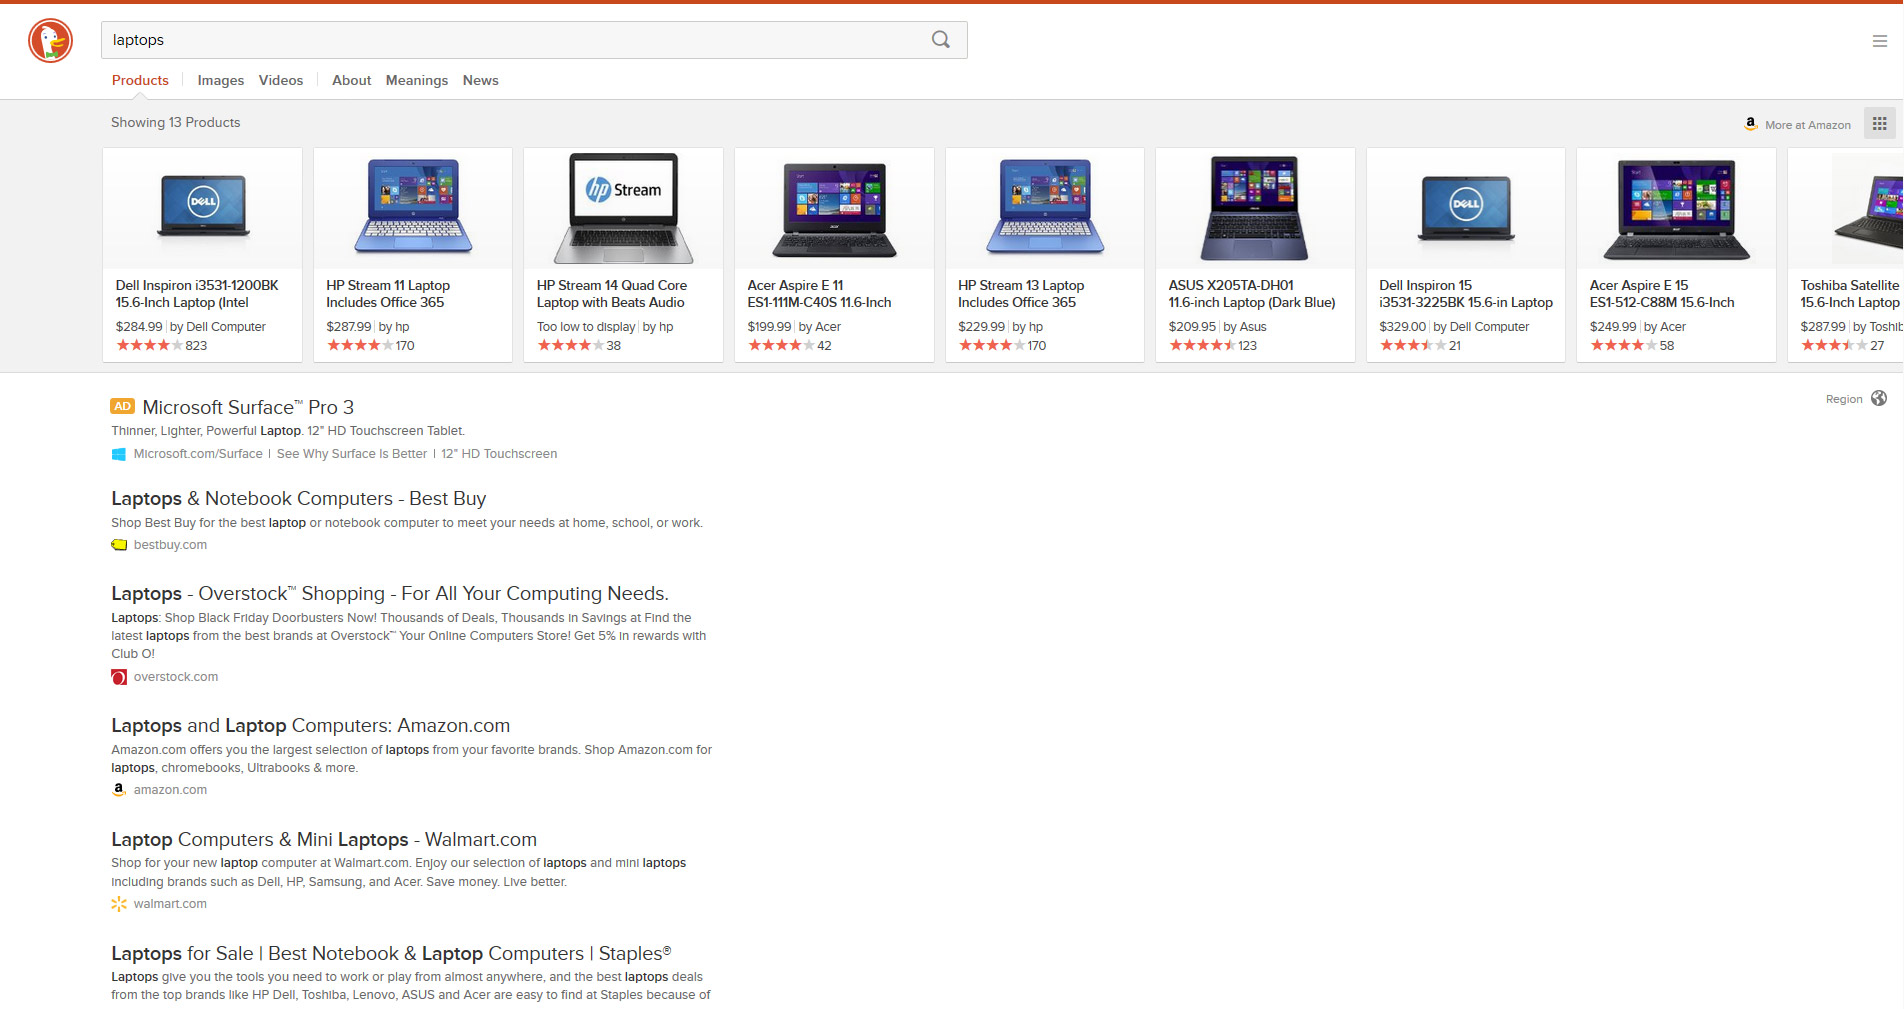 duckduckgo search result for laptop